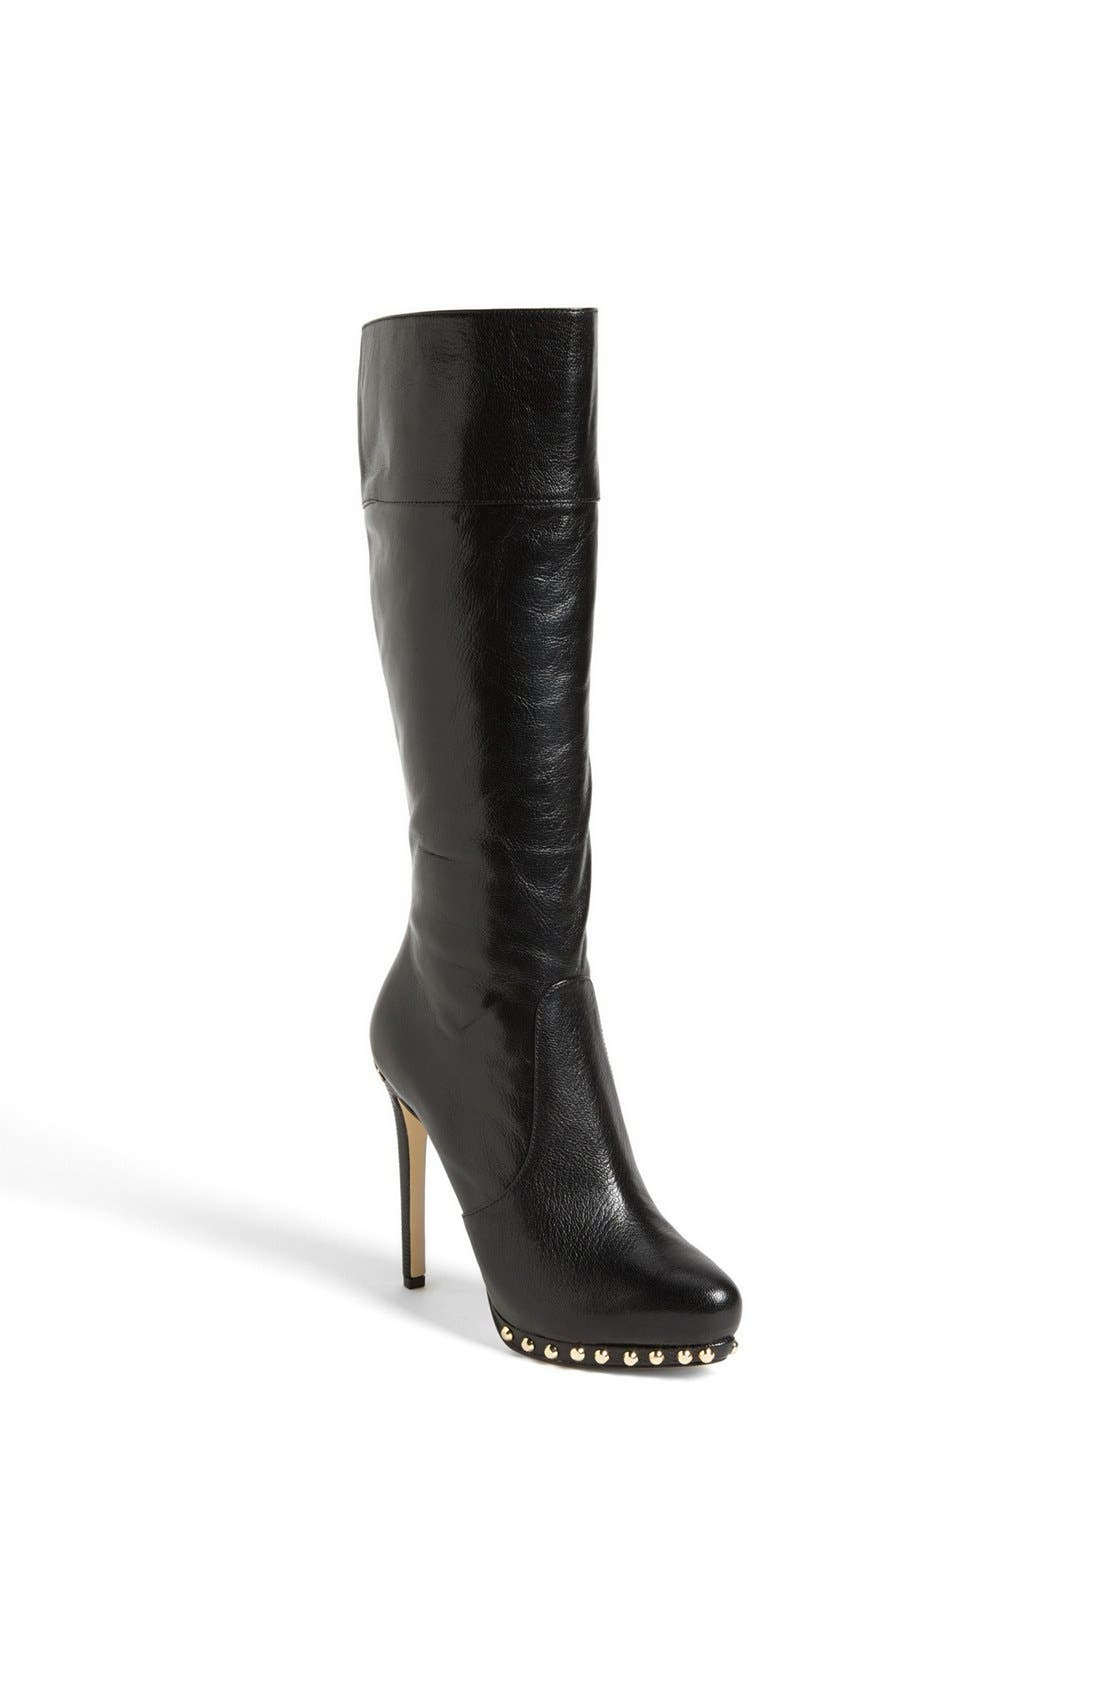 84bf58c305b5 Buy michael kors dress boots > OFF44% Discounted